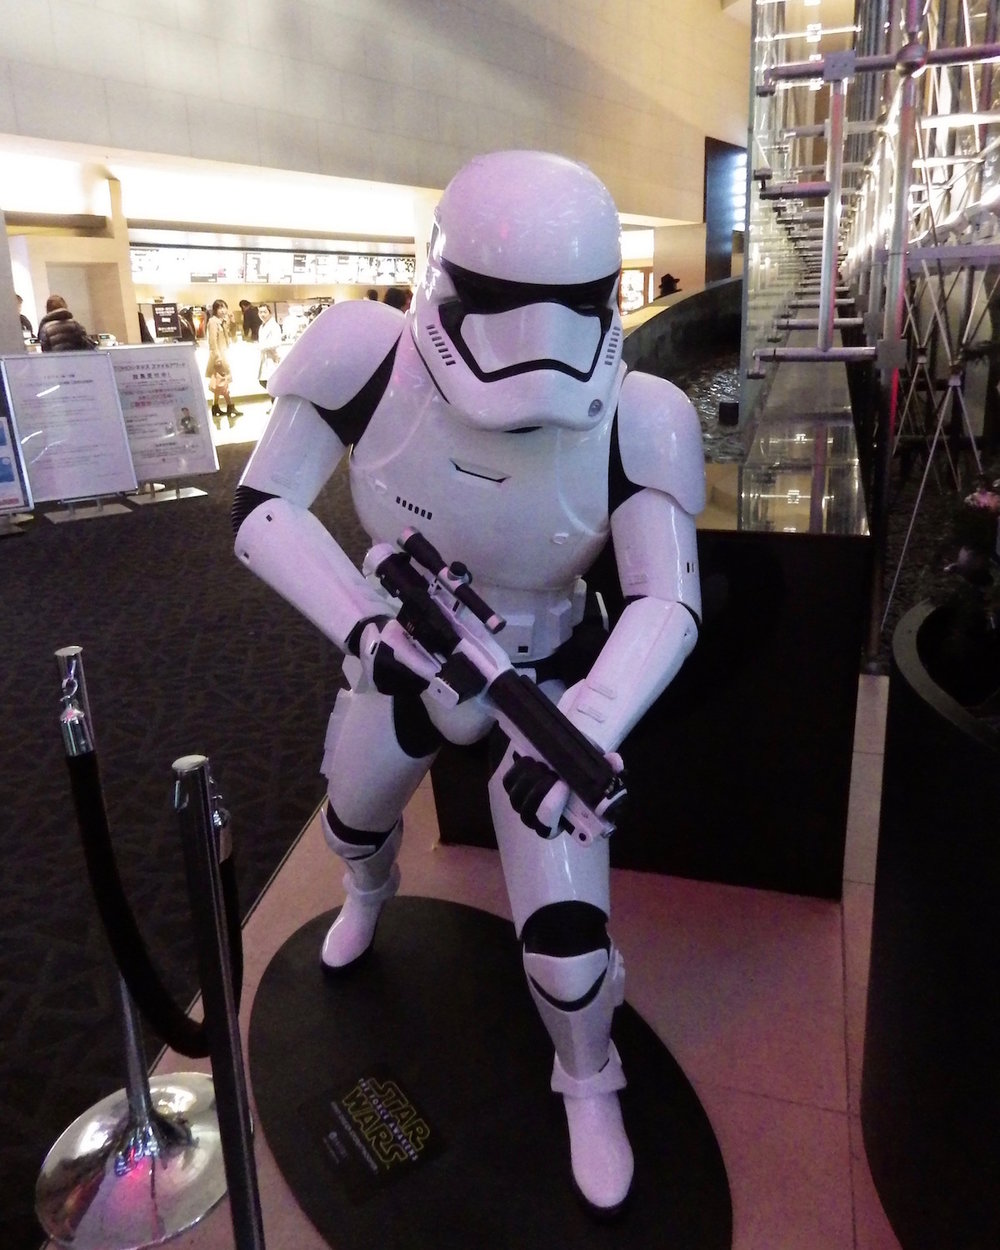 Life-size statue of the new First Order Stormtrooper.